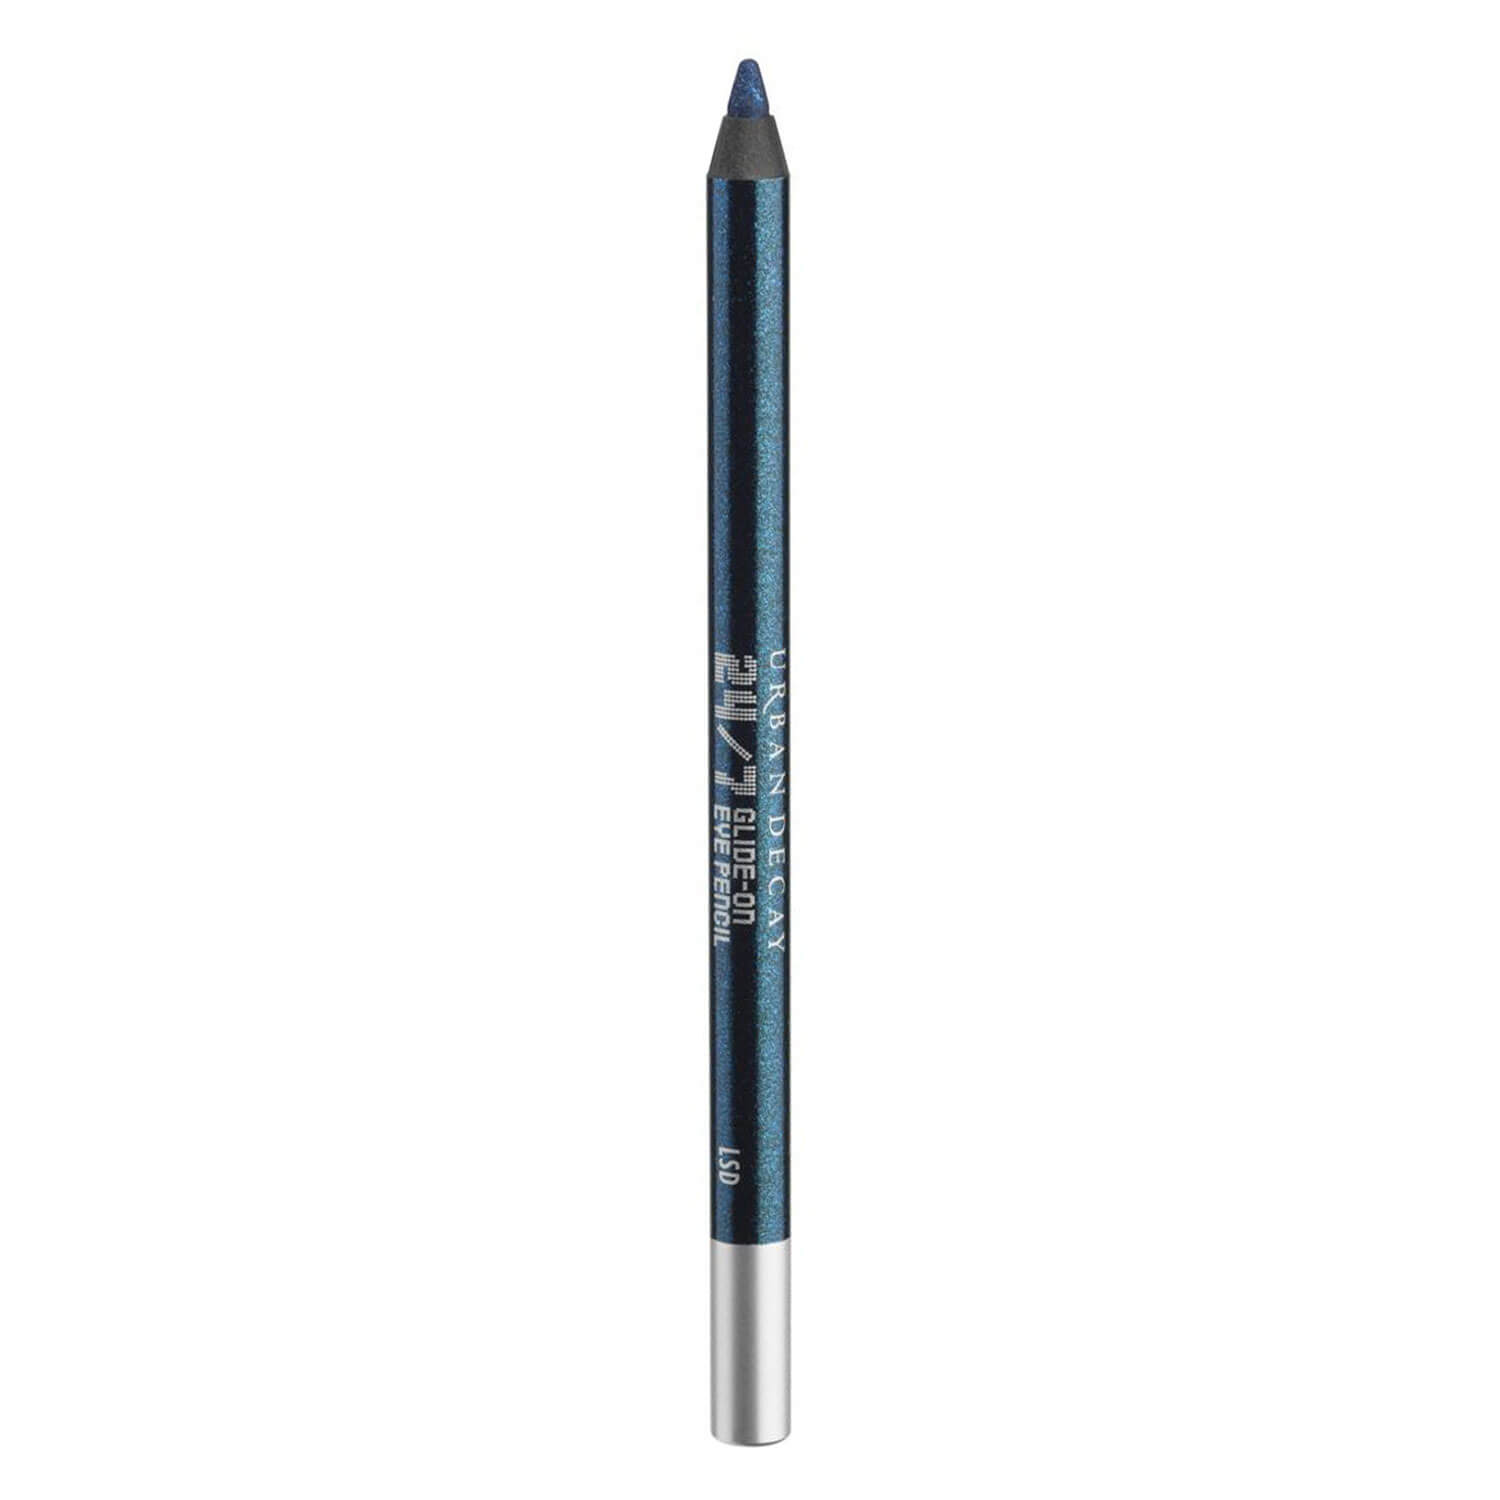 24/7 Glide-On - Eye Pencil LSD